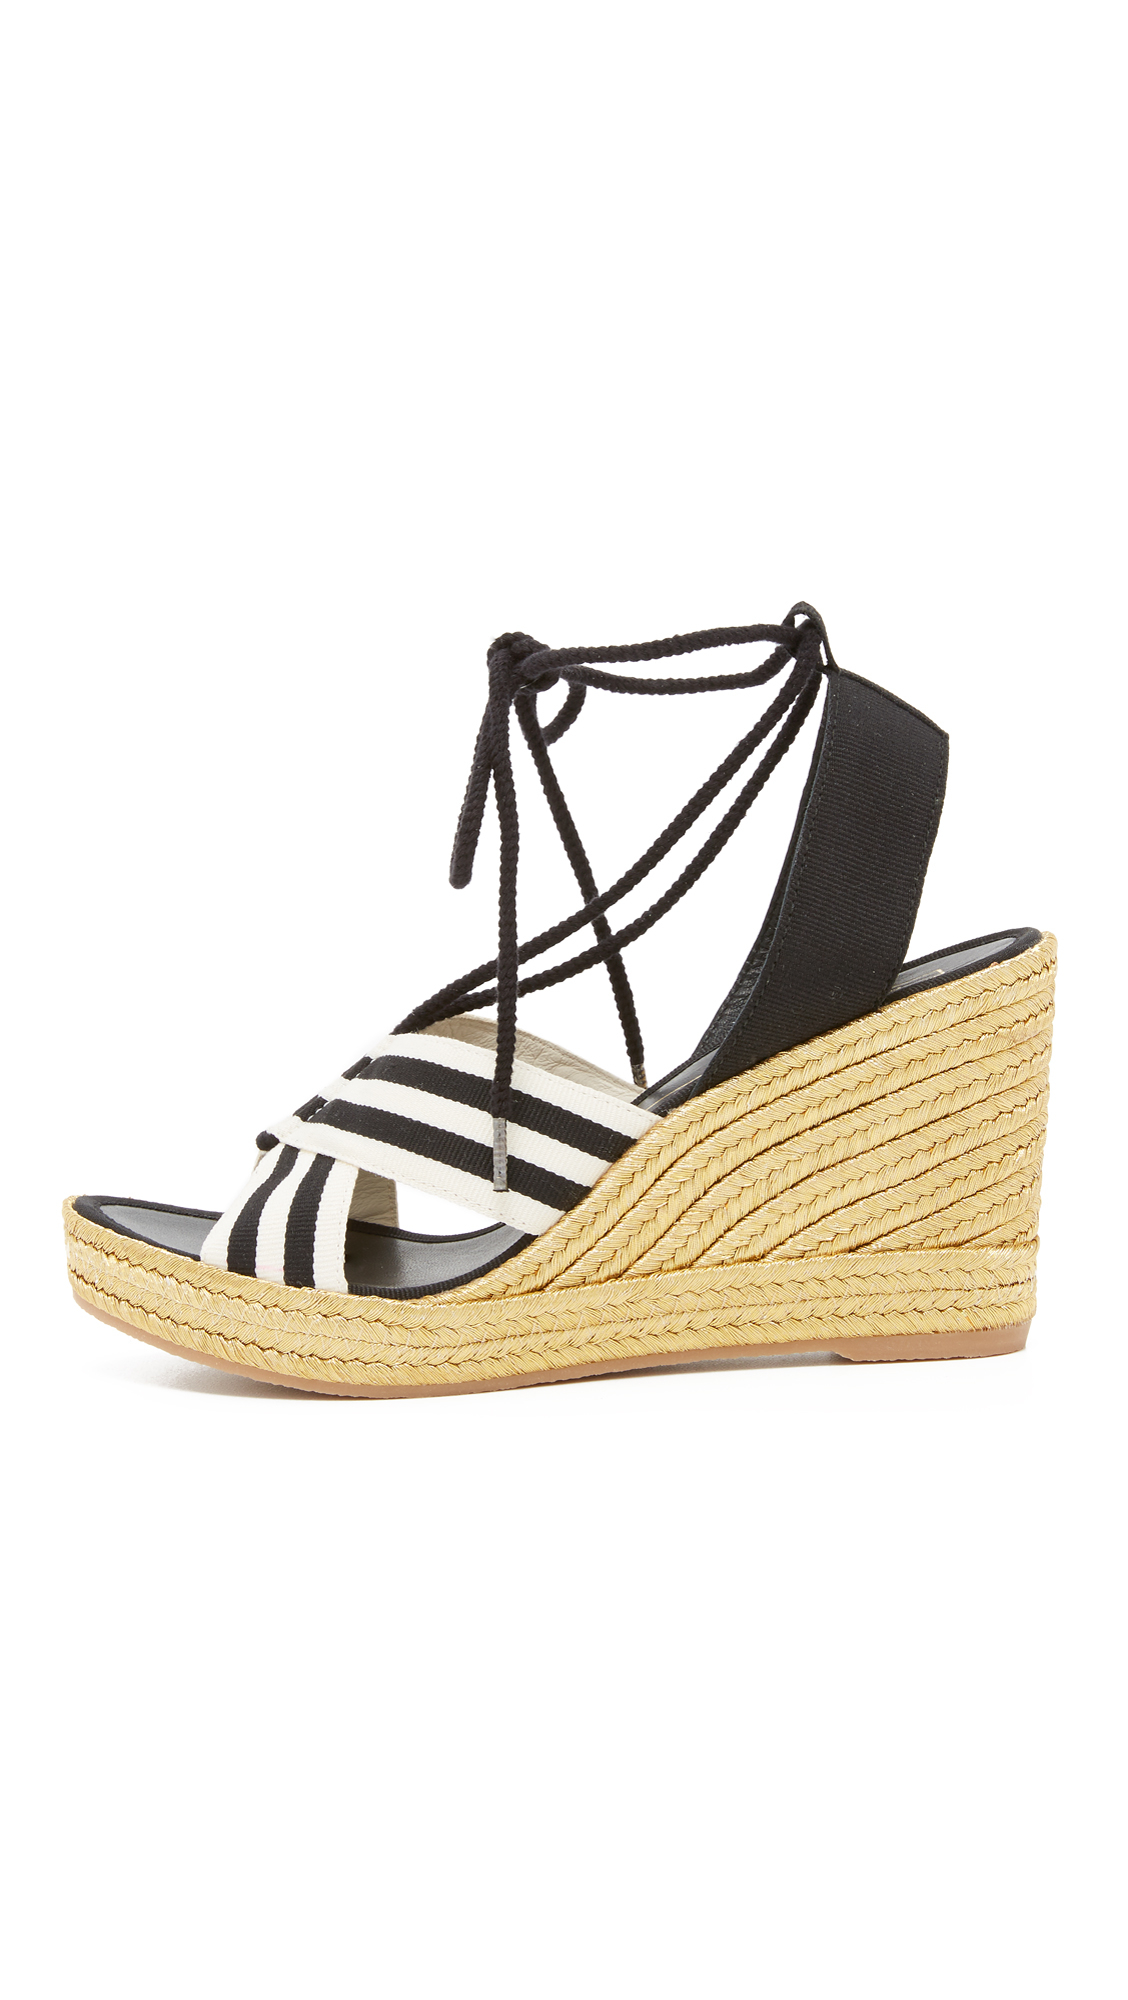 d5a7dd42fc7 Lyst - Marc Jacobs Dani Wedge Espadrille Sandals in White